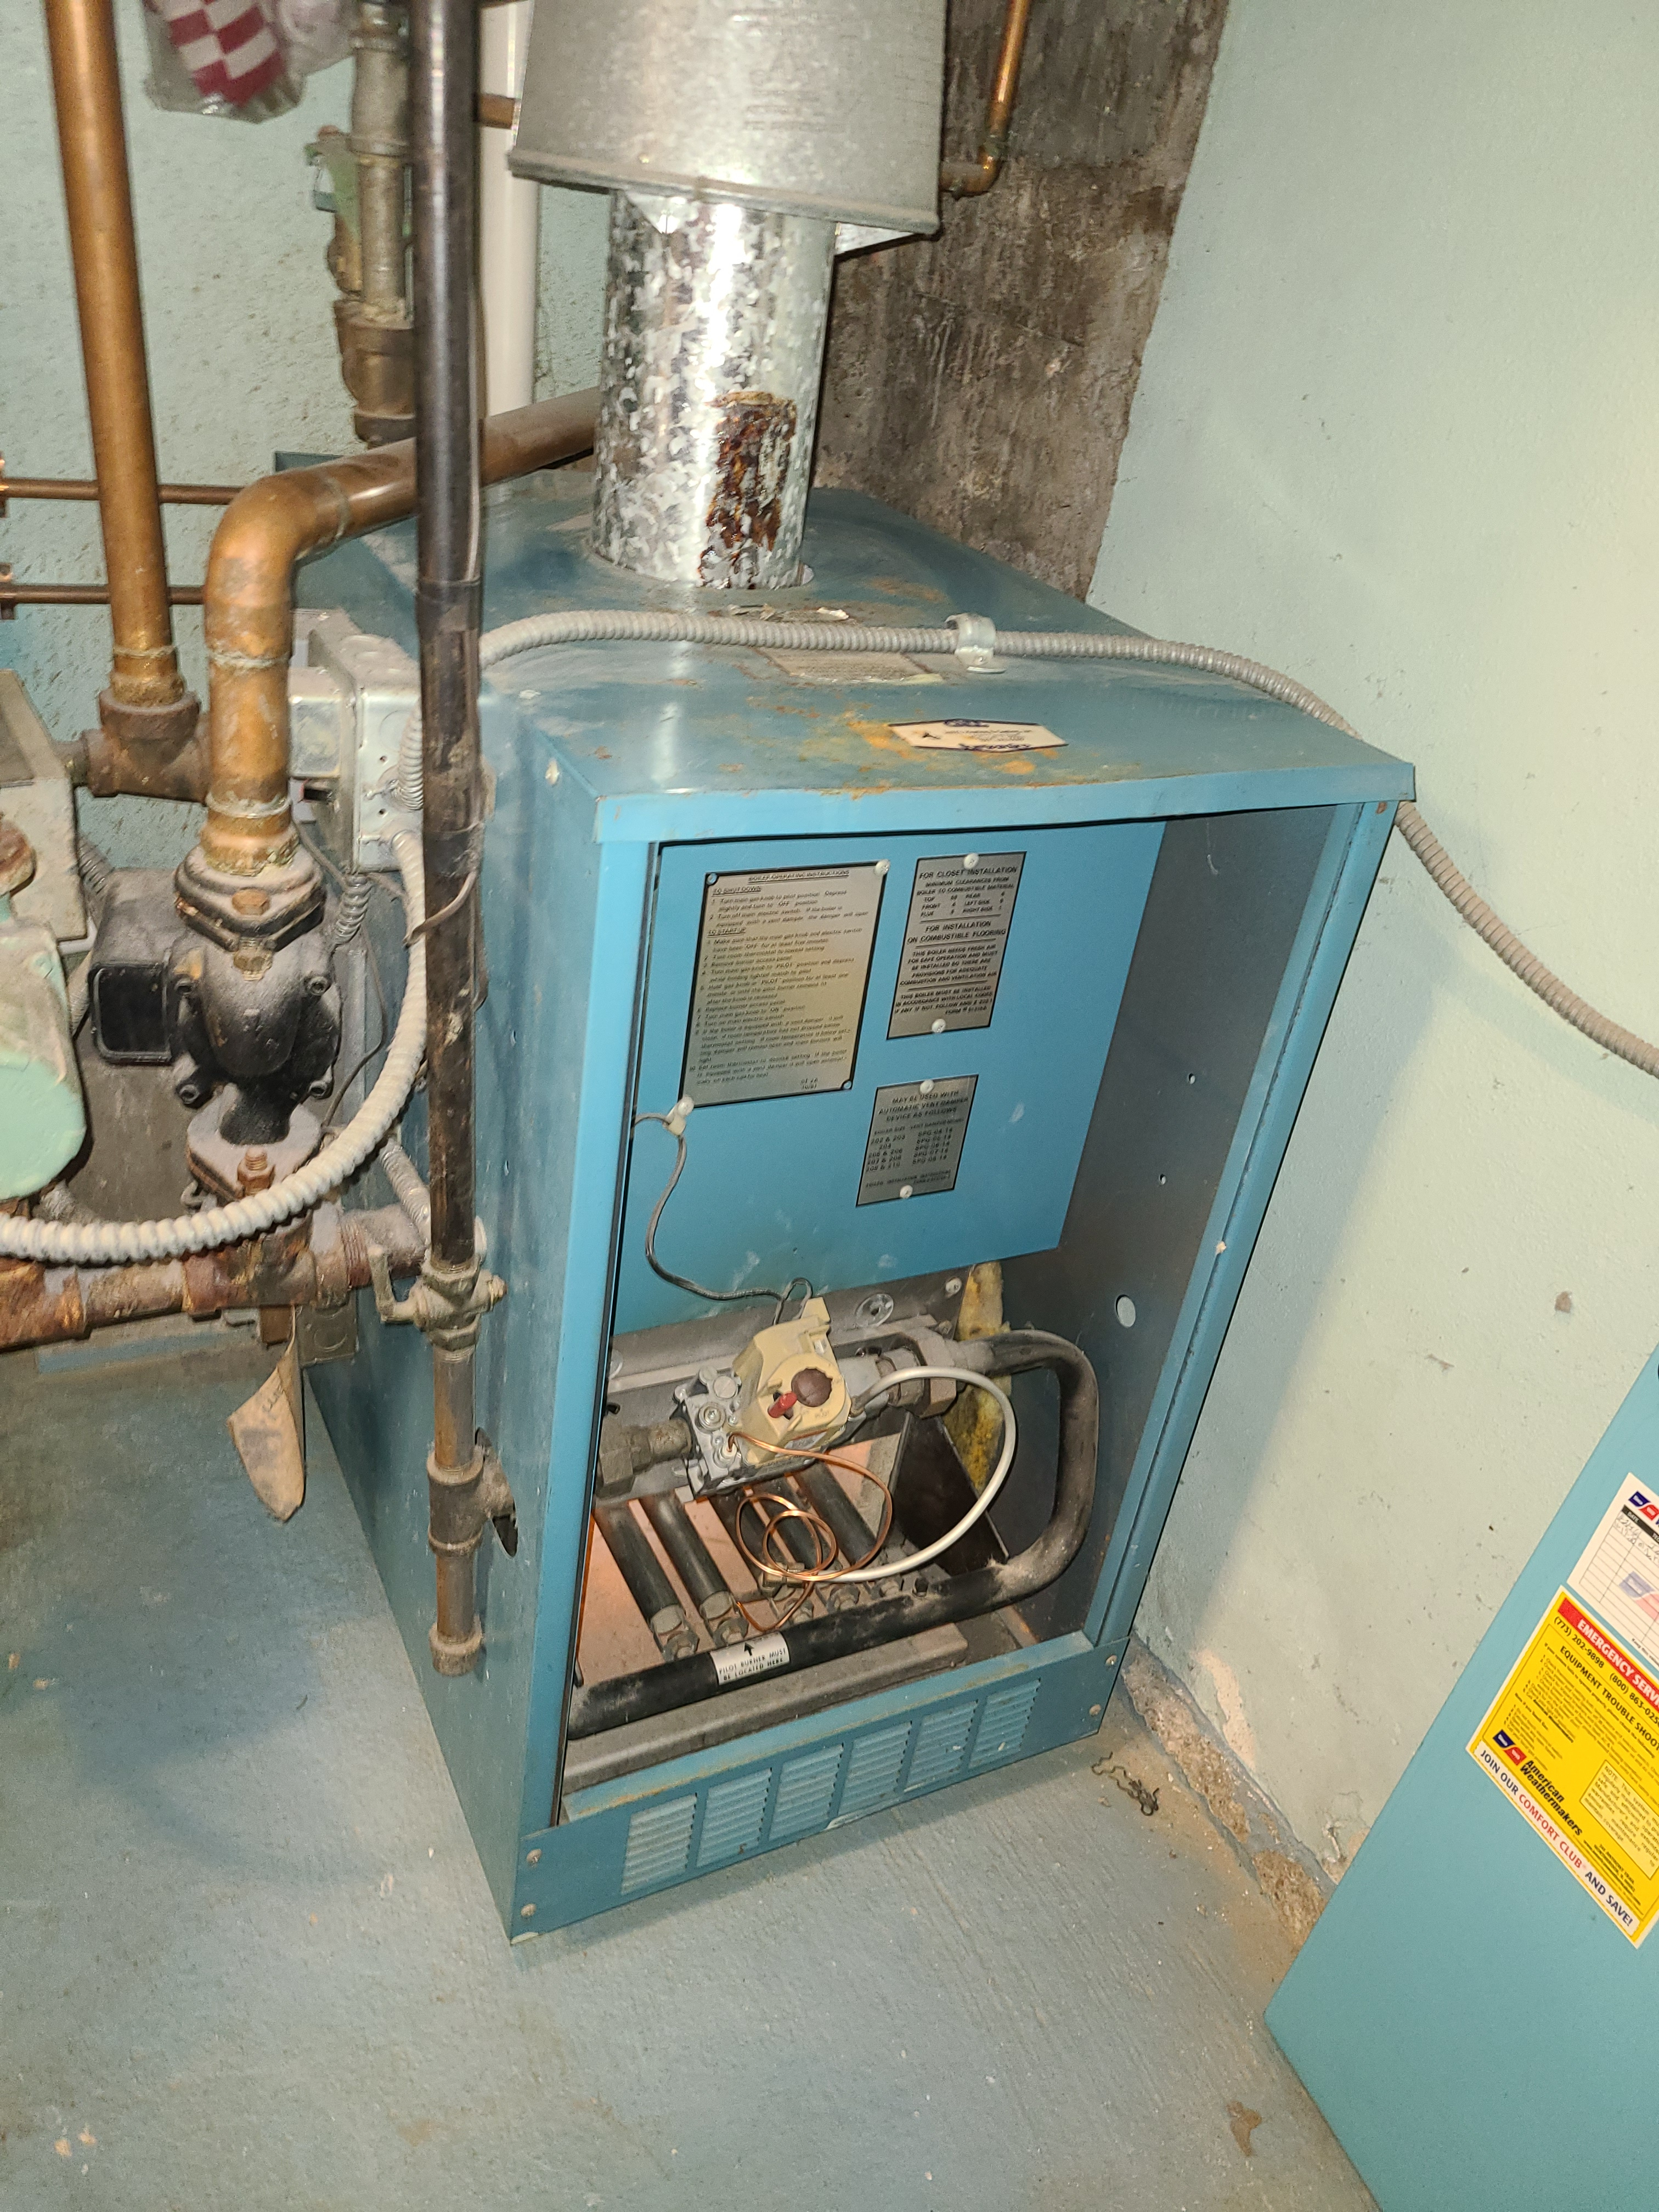 Get your boiler ready for the winter.